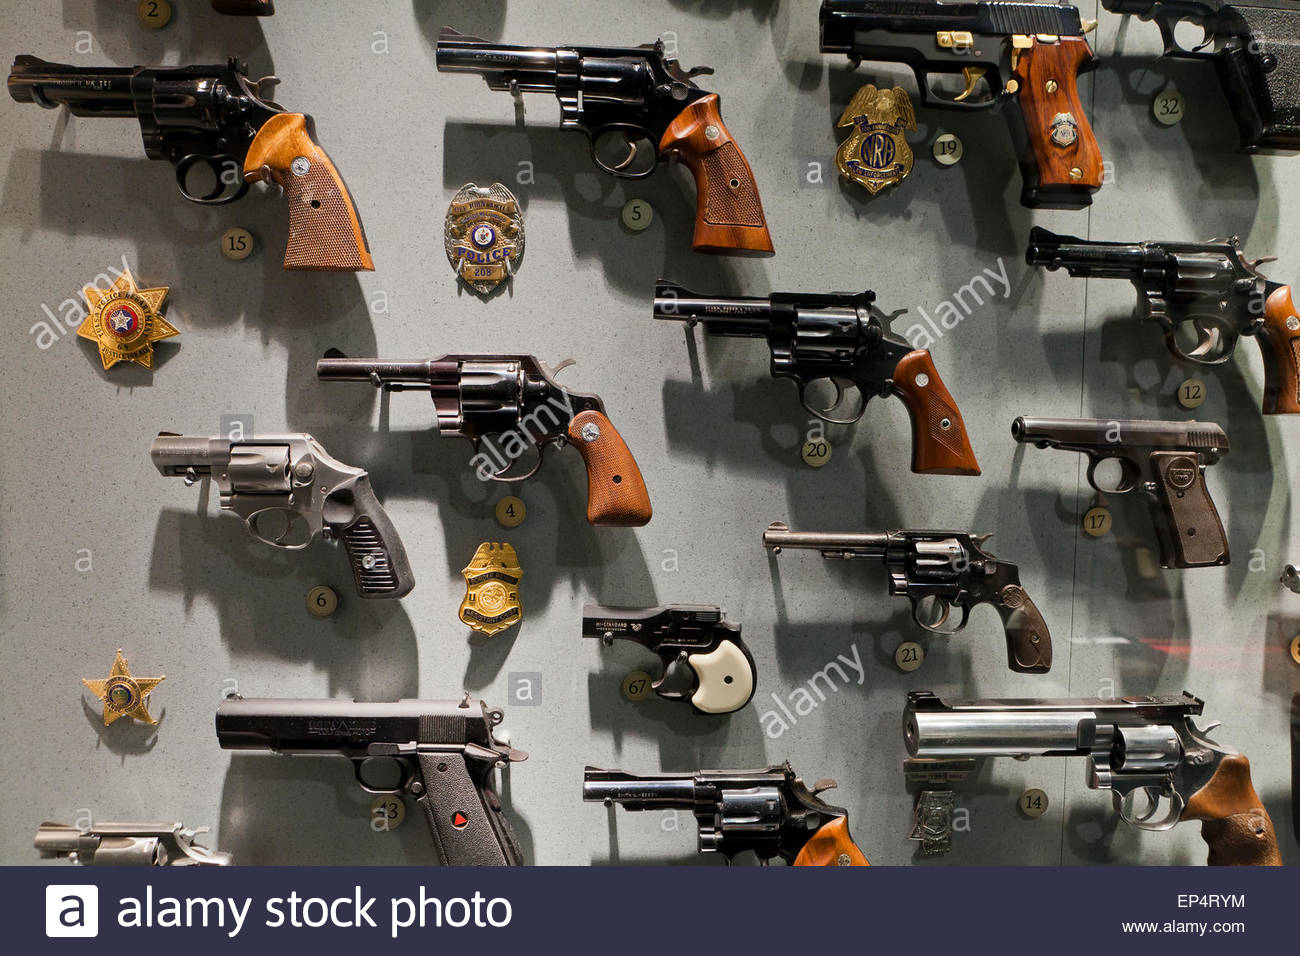 Police Issued Guns On Display At NRA Museum Fairfax Virginia - Gun museums in usa